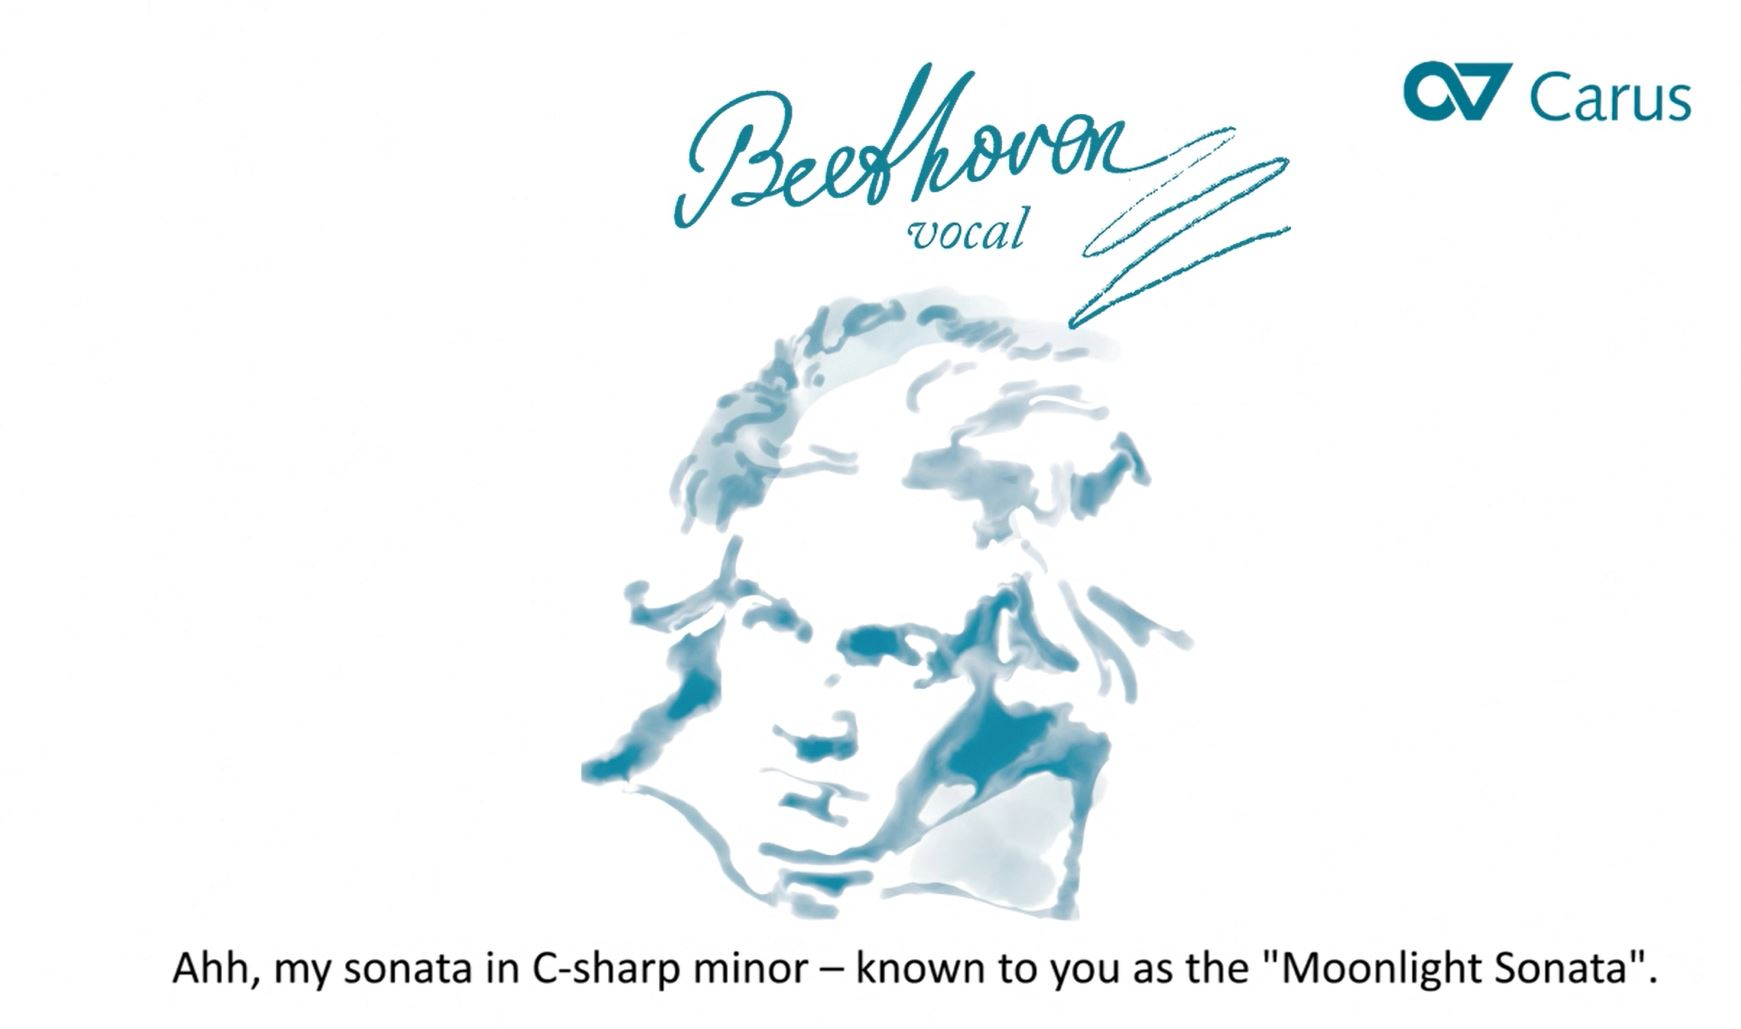 Beethoven vocal